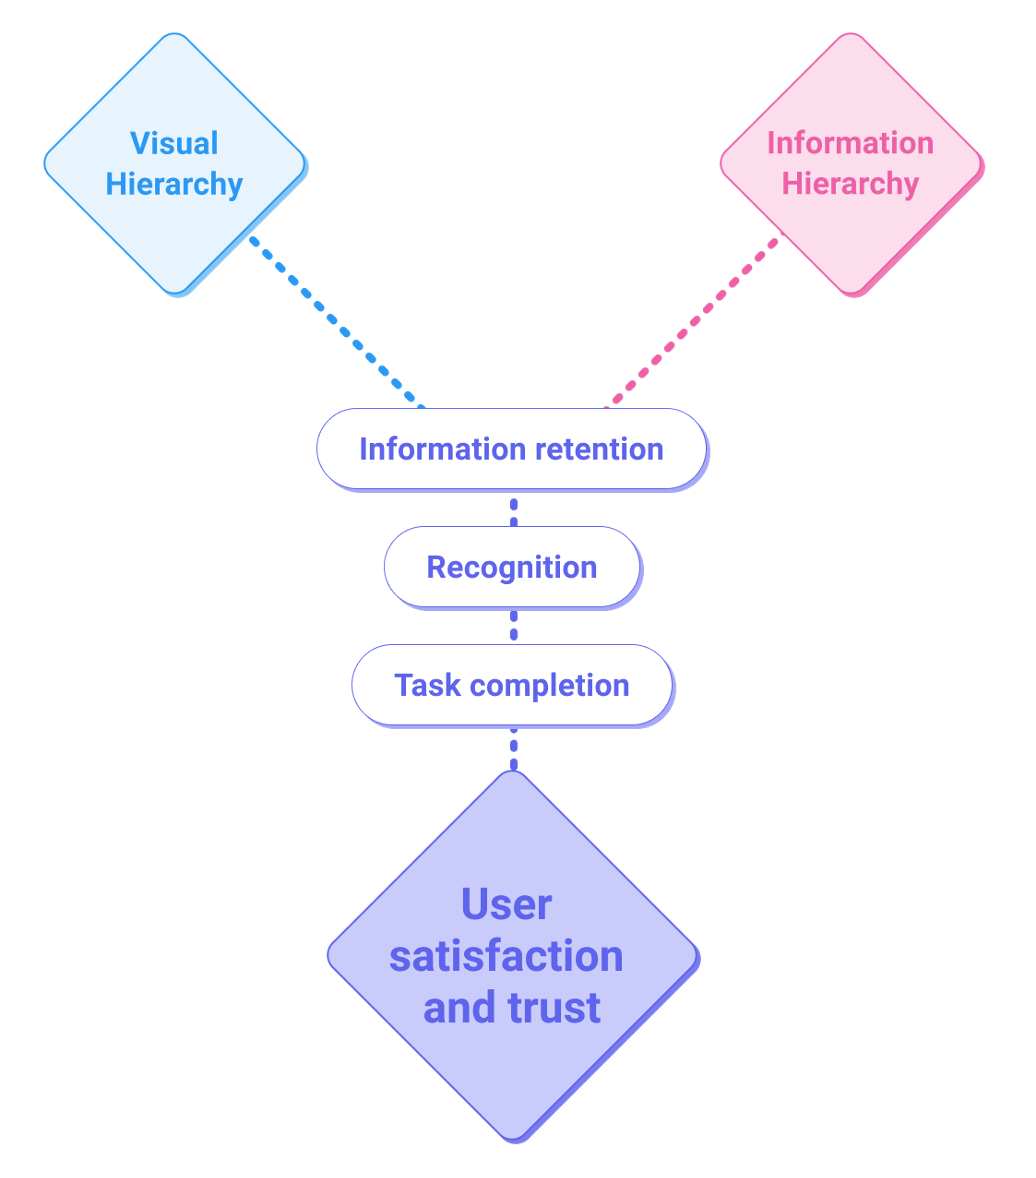 Relationship between information and visual hierarchy and trust